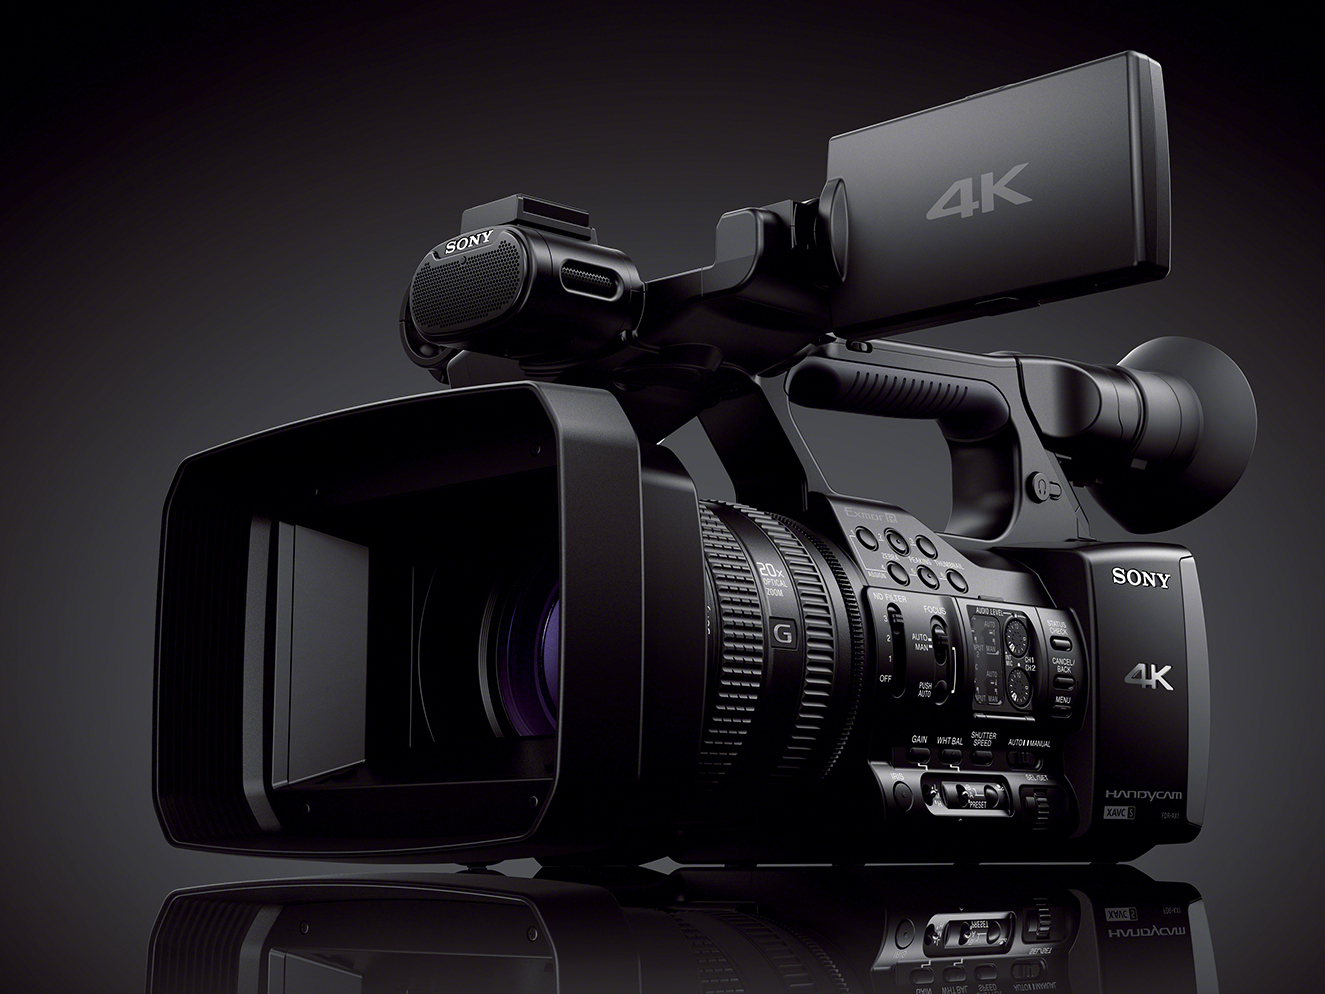 sony video camera 4k. 4, 2013 \u2013 today sony electronics unveiled its first 4k consumer camcorder - the new fdr-ax1 handycam. now video enthusiasts can capture content for camera 4k m